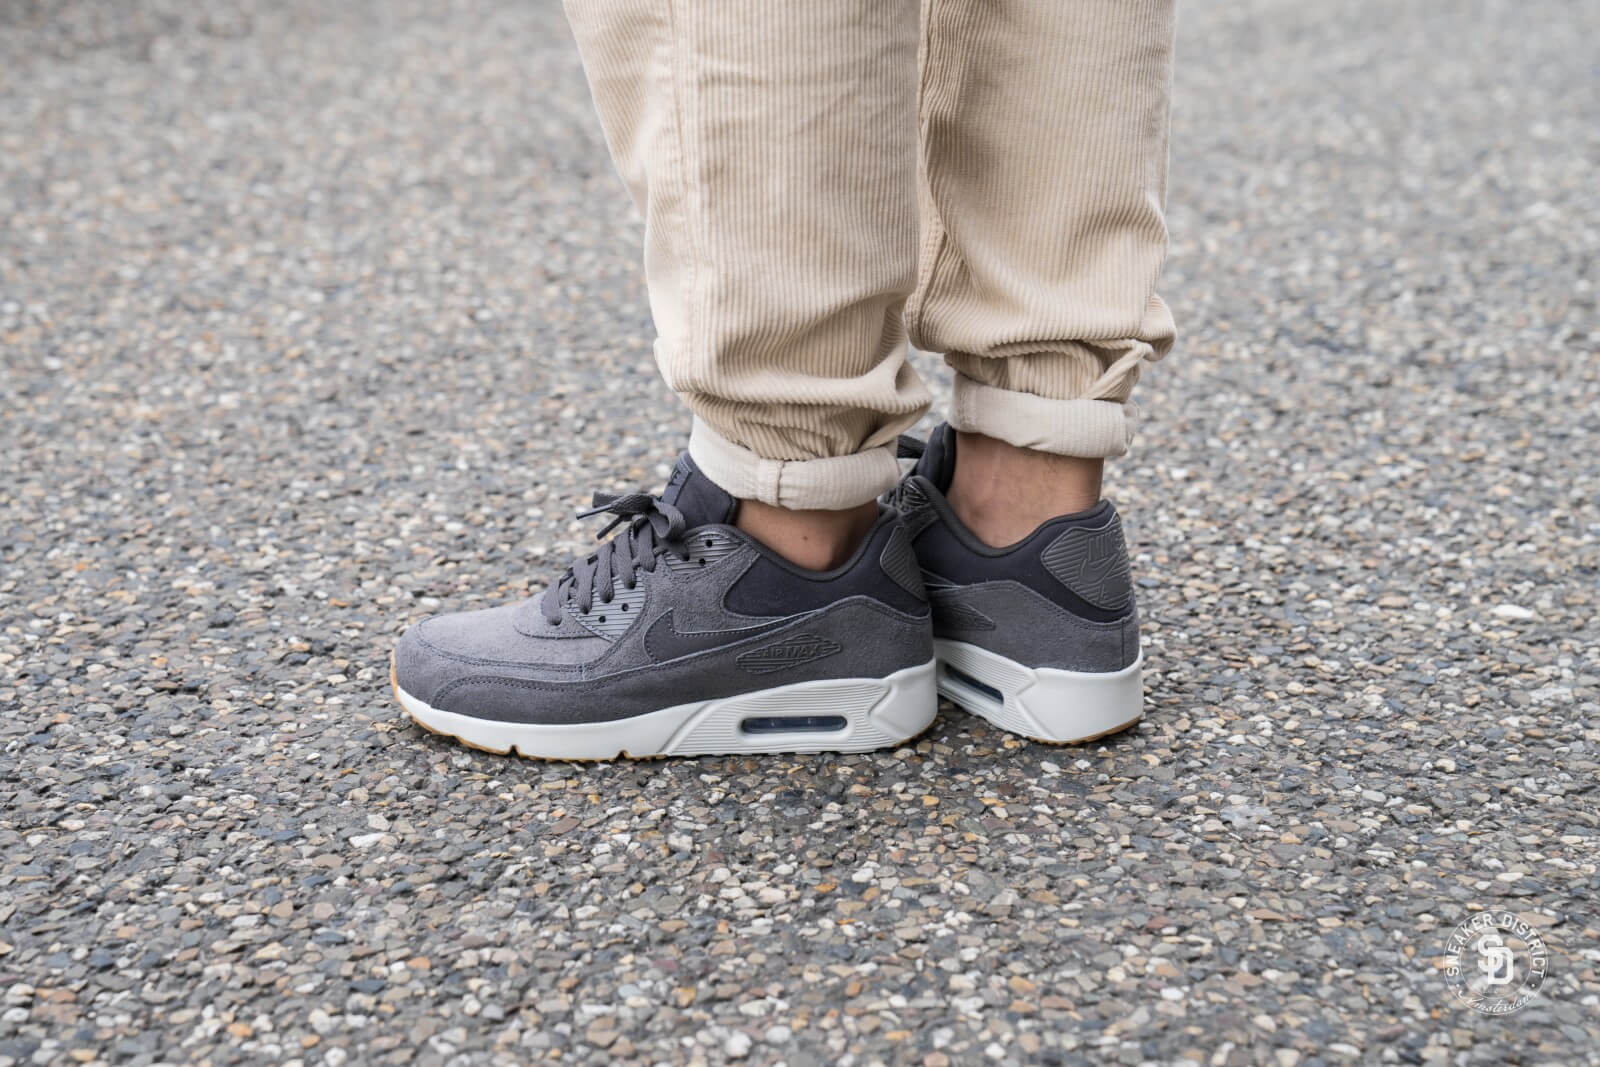 Nike Air Max 90 Ultra 2.0 Thunder Grey Light Bone Gum Mens